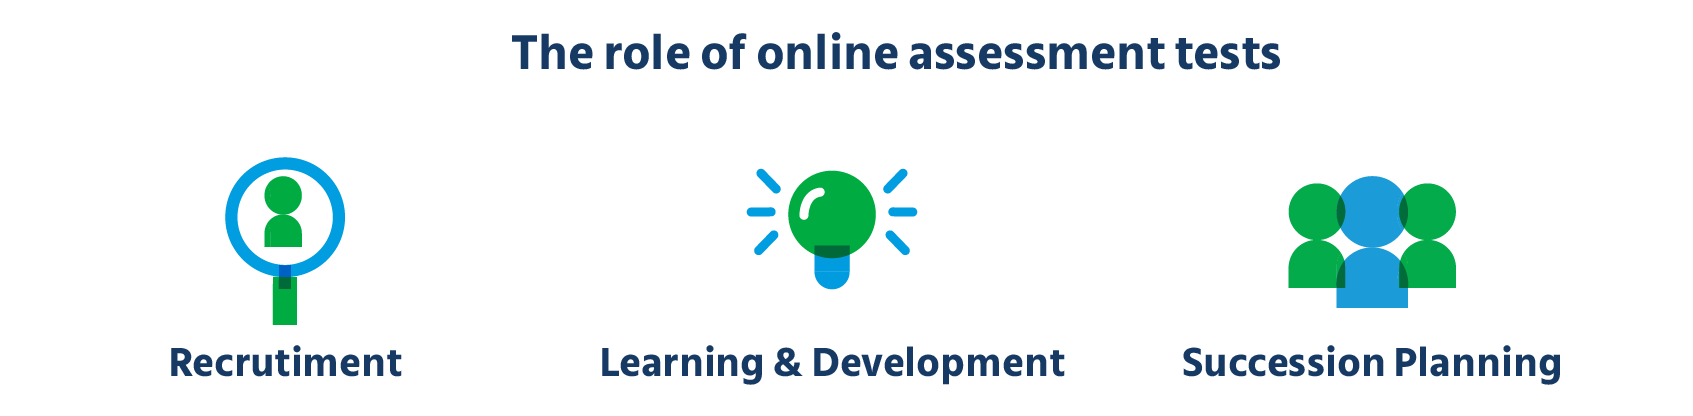 The_role_of_online_assessment_tests